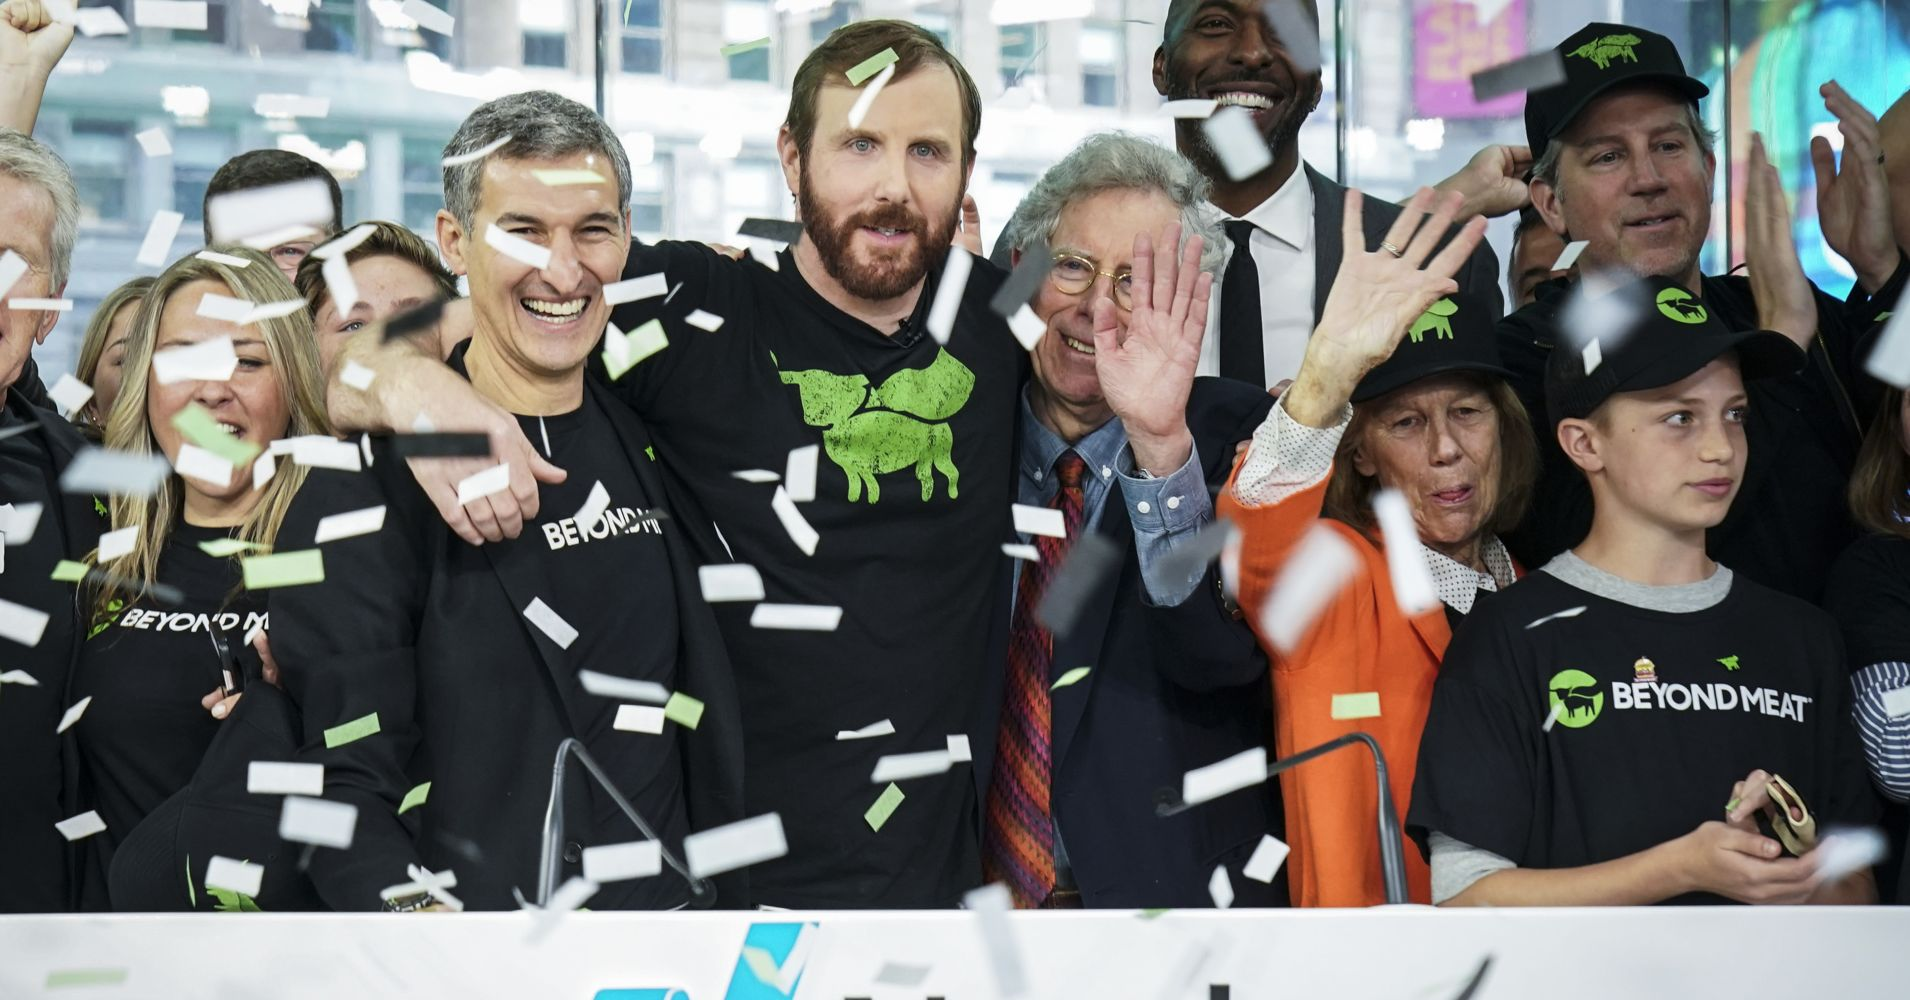 Beyond Meat CEO Ethan Brown (C) celebrates with guests after ringing the opening bell at Nasdaq MarketSite, May 2, 2019 in New York City.